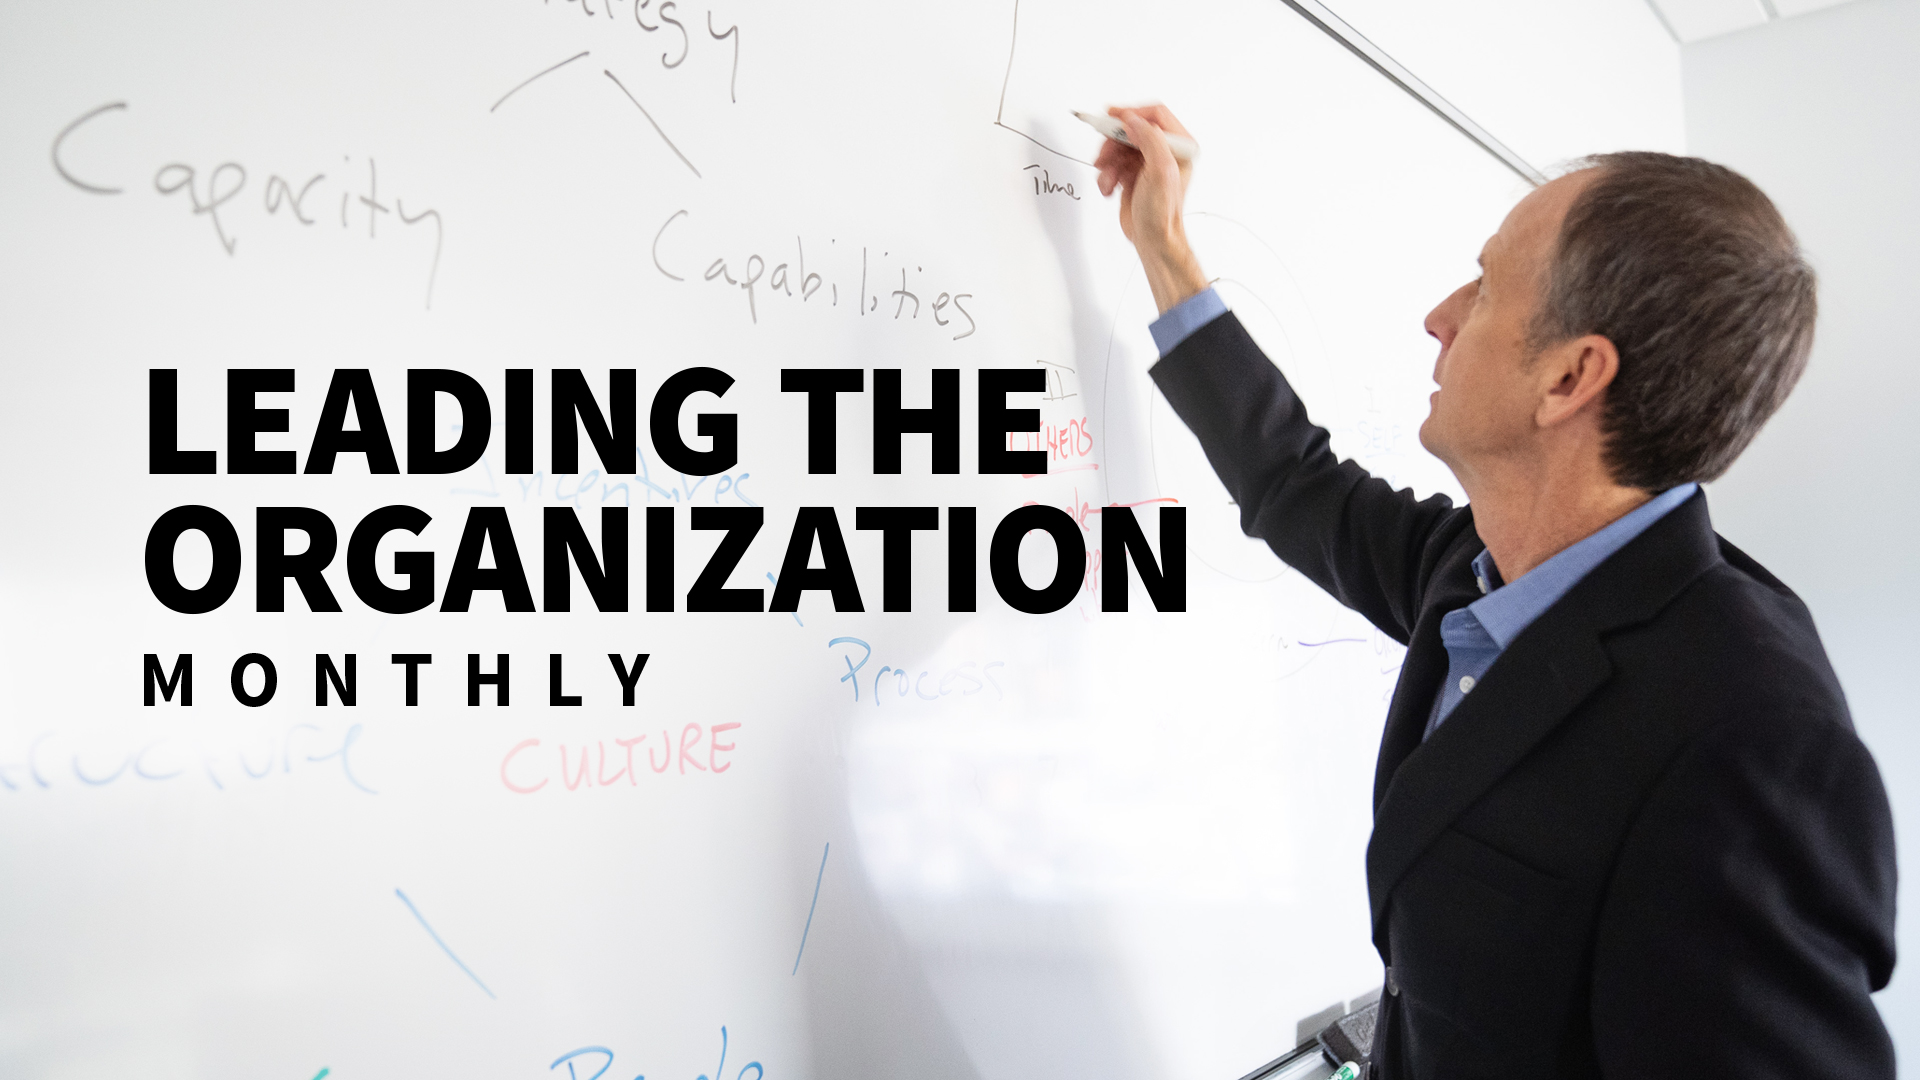 Defining the meaningful outside: Leading the Organization Monthly